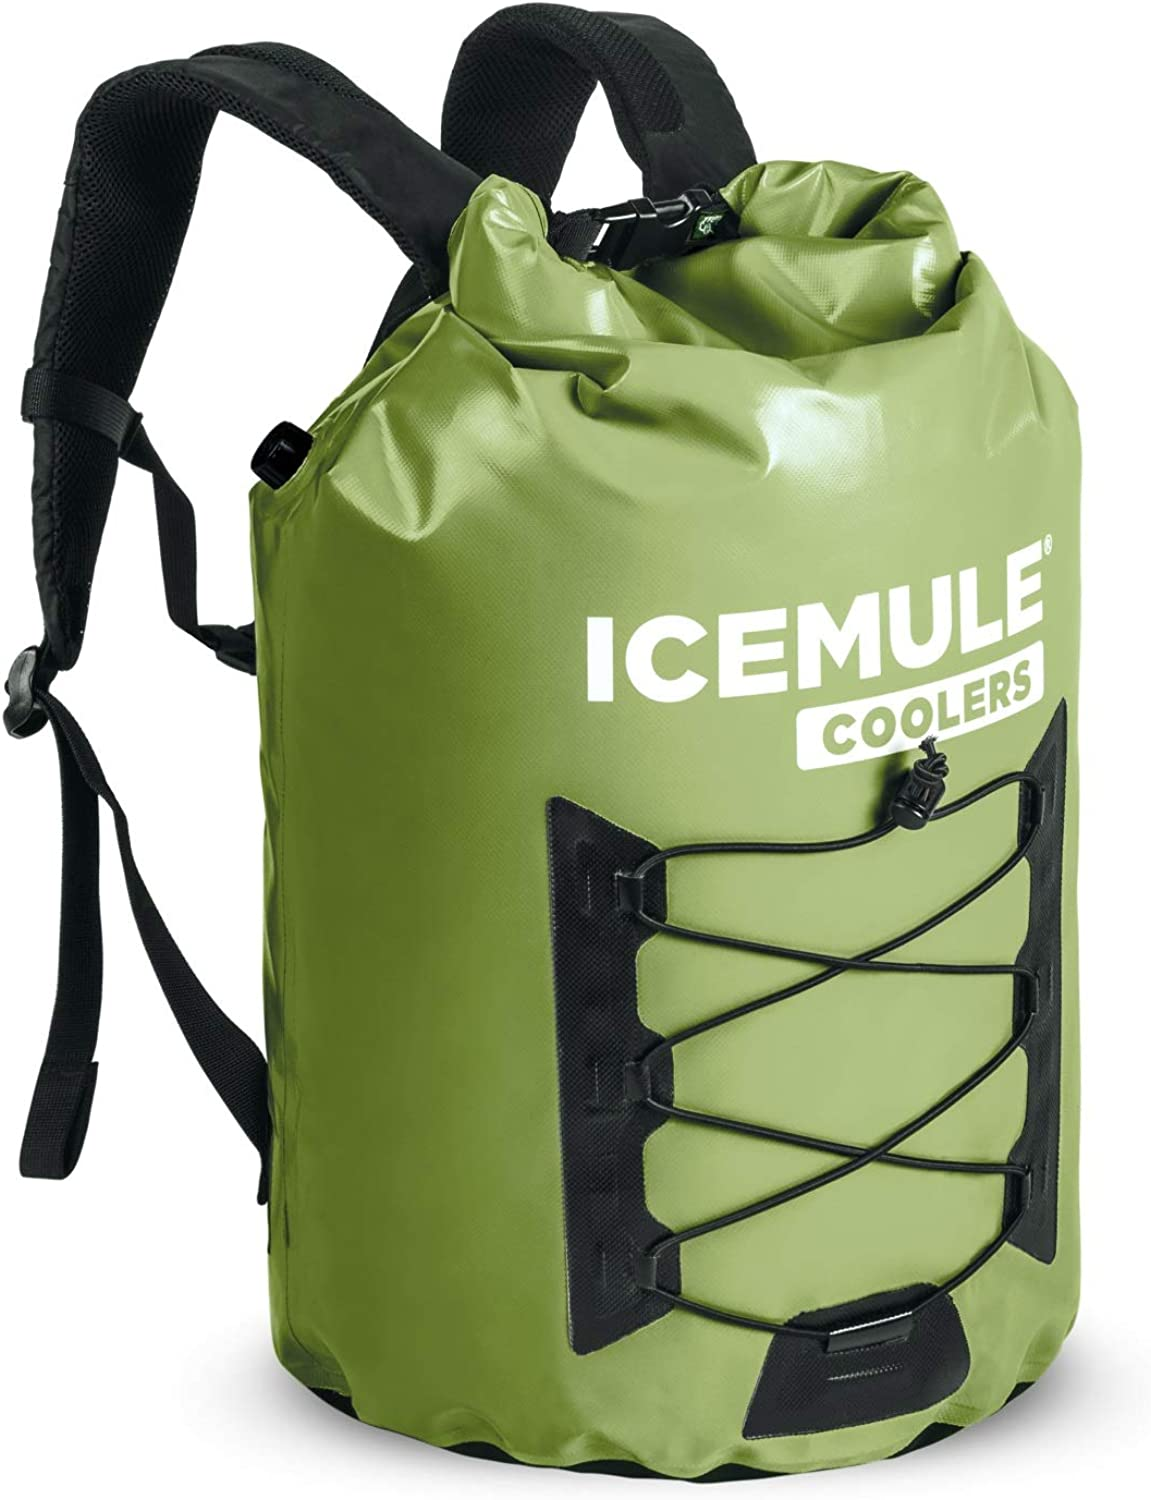 IceMule Pro Backpack Cooler  Large (23L)  Olive Green